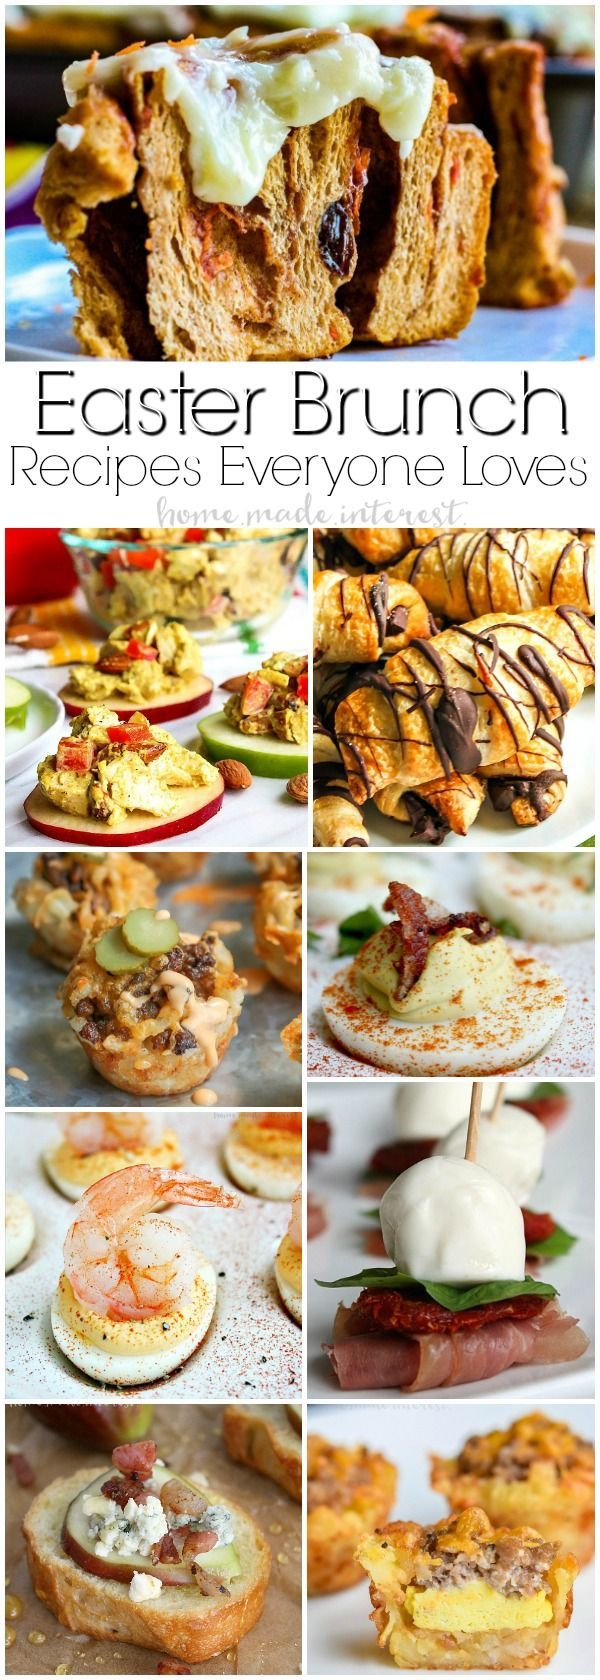 Best Brunch Recipes to Impress Your guests | We've got some of the BEST brunch recipes! From make ahead breakfast casseroles to cinnamon rolls, these brunch recipes will make it easy to feed your guests without spending your whole day in the kitchen. These are some of the best brunch recipes for Easter brunch, Mother's Day brunch or just a weekend brunch with family.